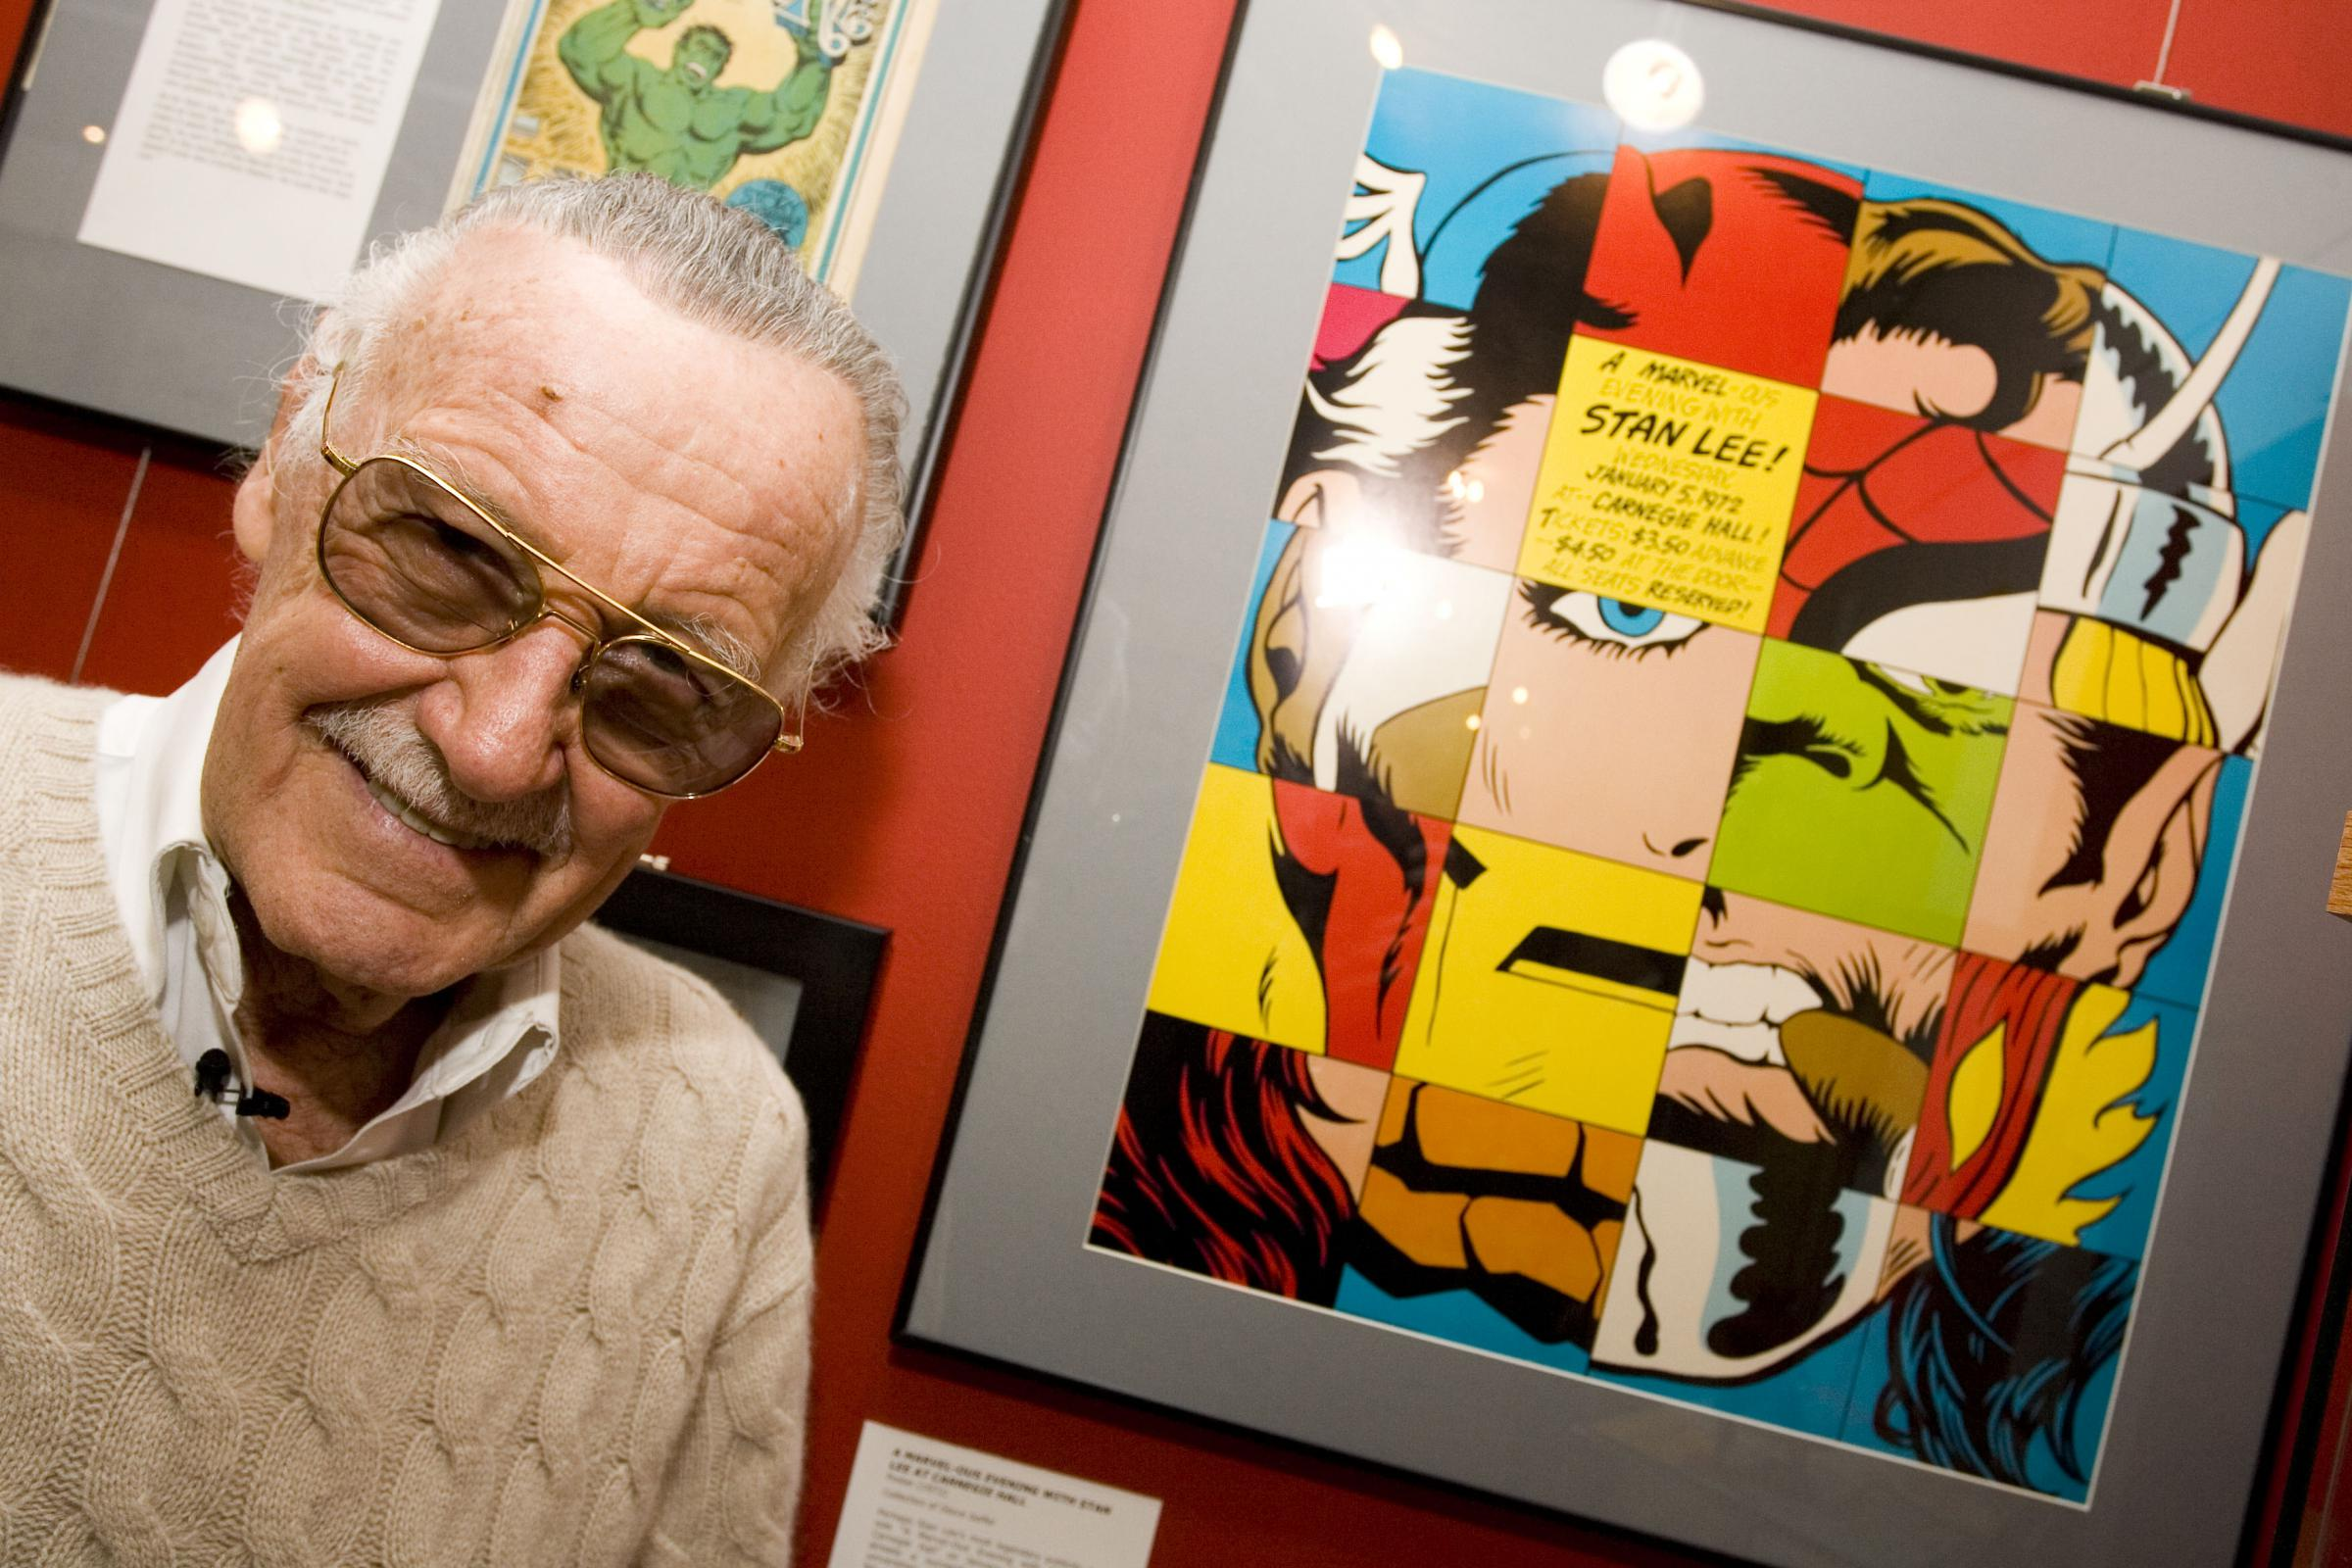 Comic Book Legend Stan Lee Poses At The Opening Reception For A Retrospective Presented By Museum Of And Cartoon Art On Feb